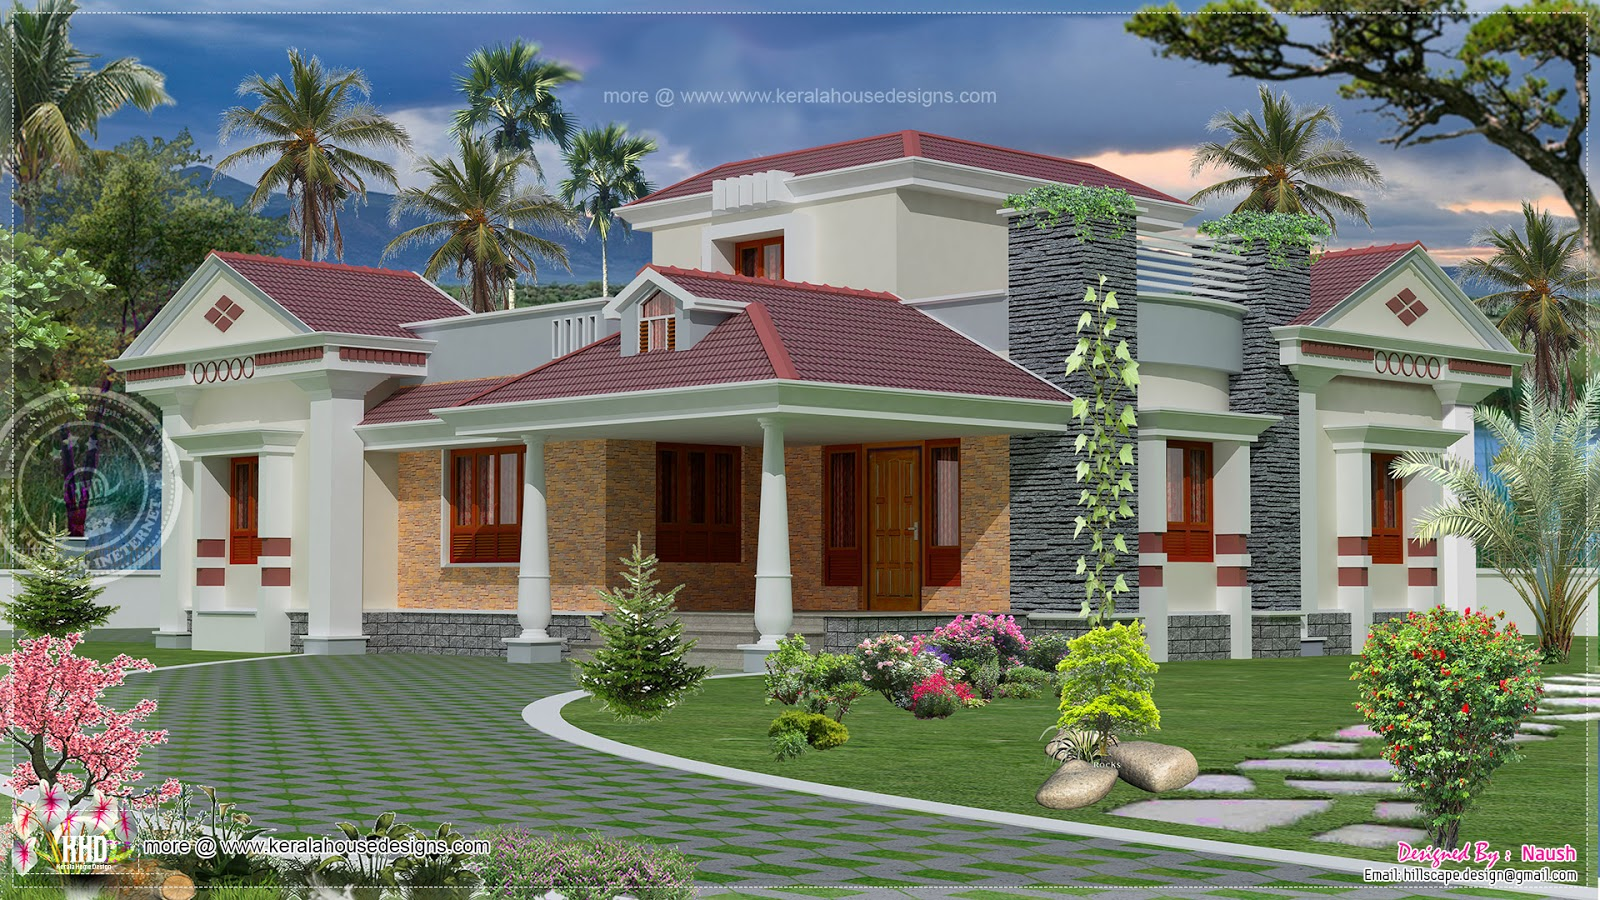 June 2014 home kerala plans for Kerala style single storey house plans